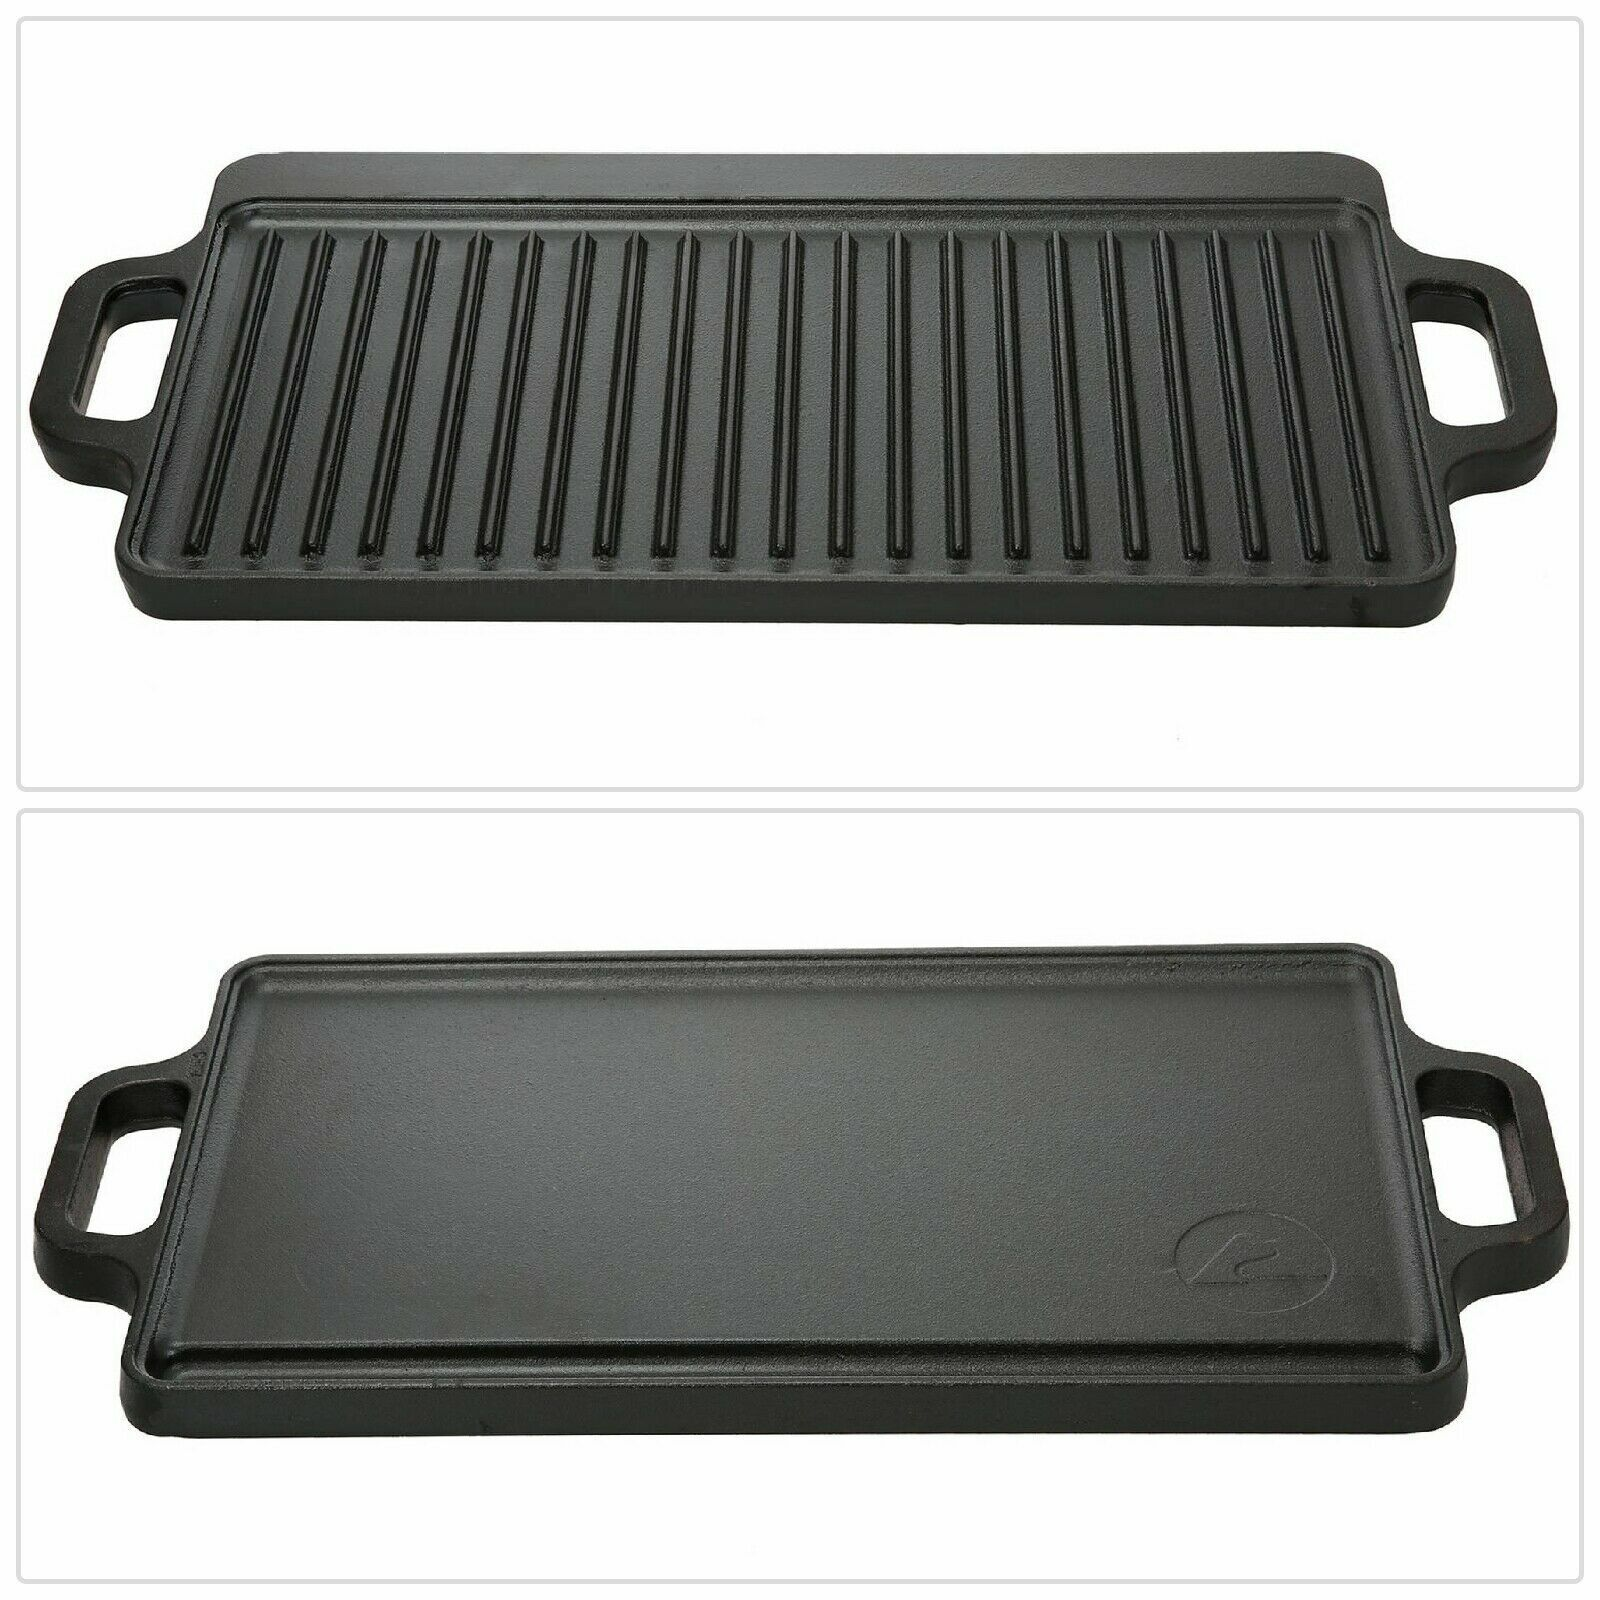 "Reversible Cast Iron Grill Griddle Pan 17"" x 9 Hamburger Ste"